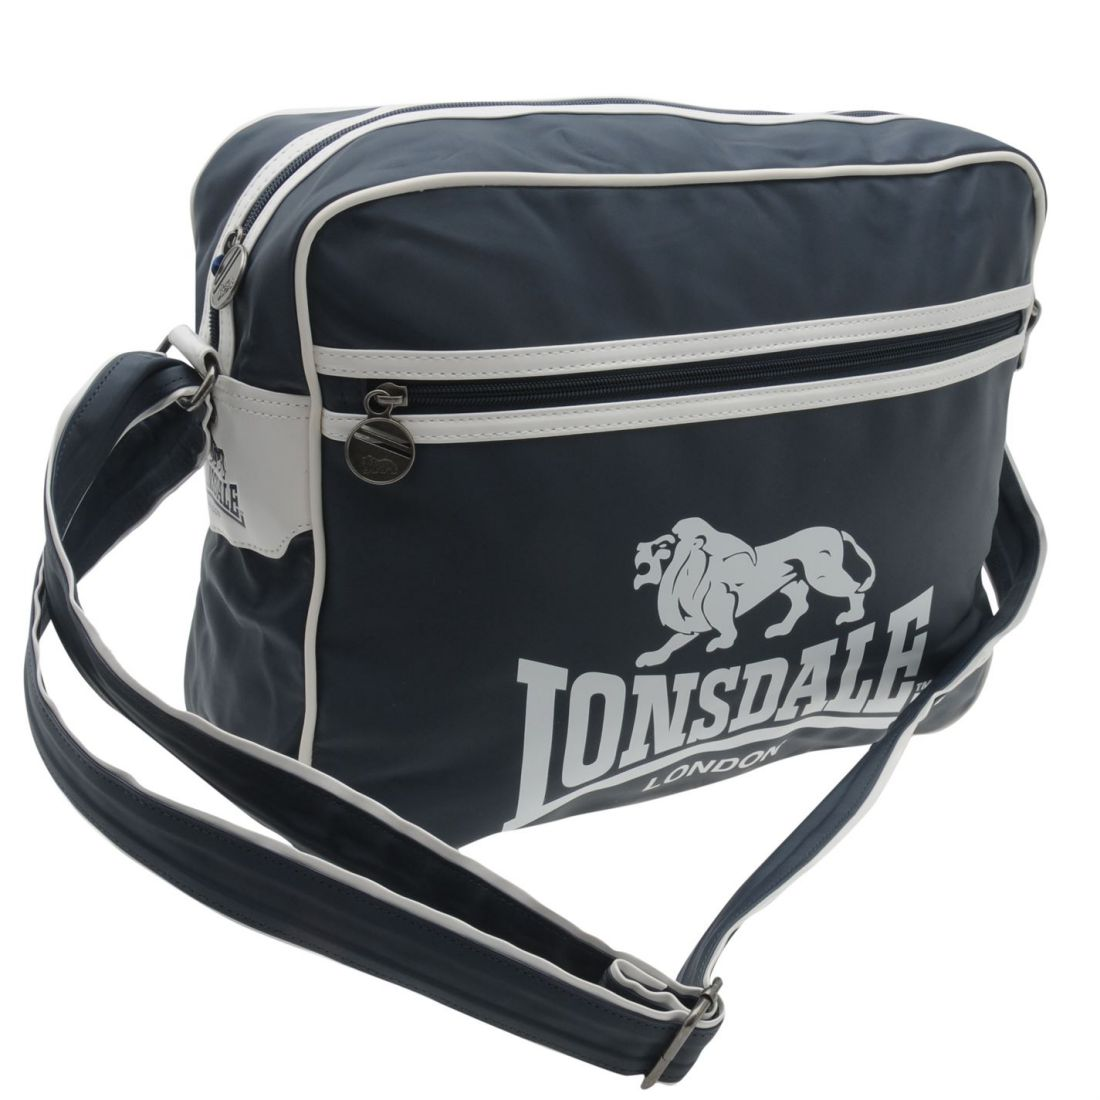 6c95e88fd8 Image is loading Lonsdale-Cabin-Flight-Bag-Lightweight-Suitcase-Accessories